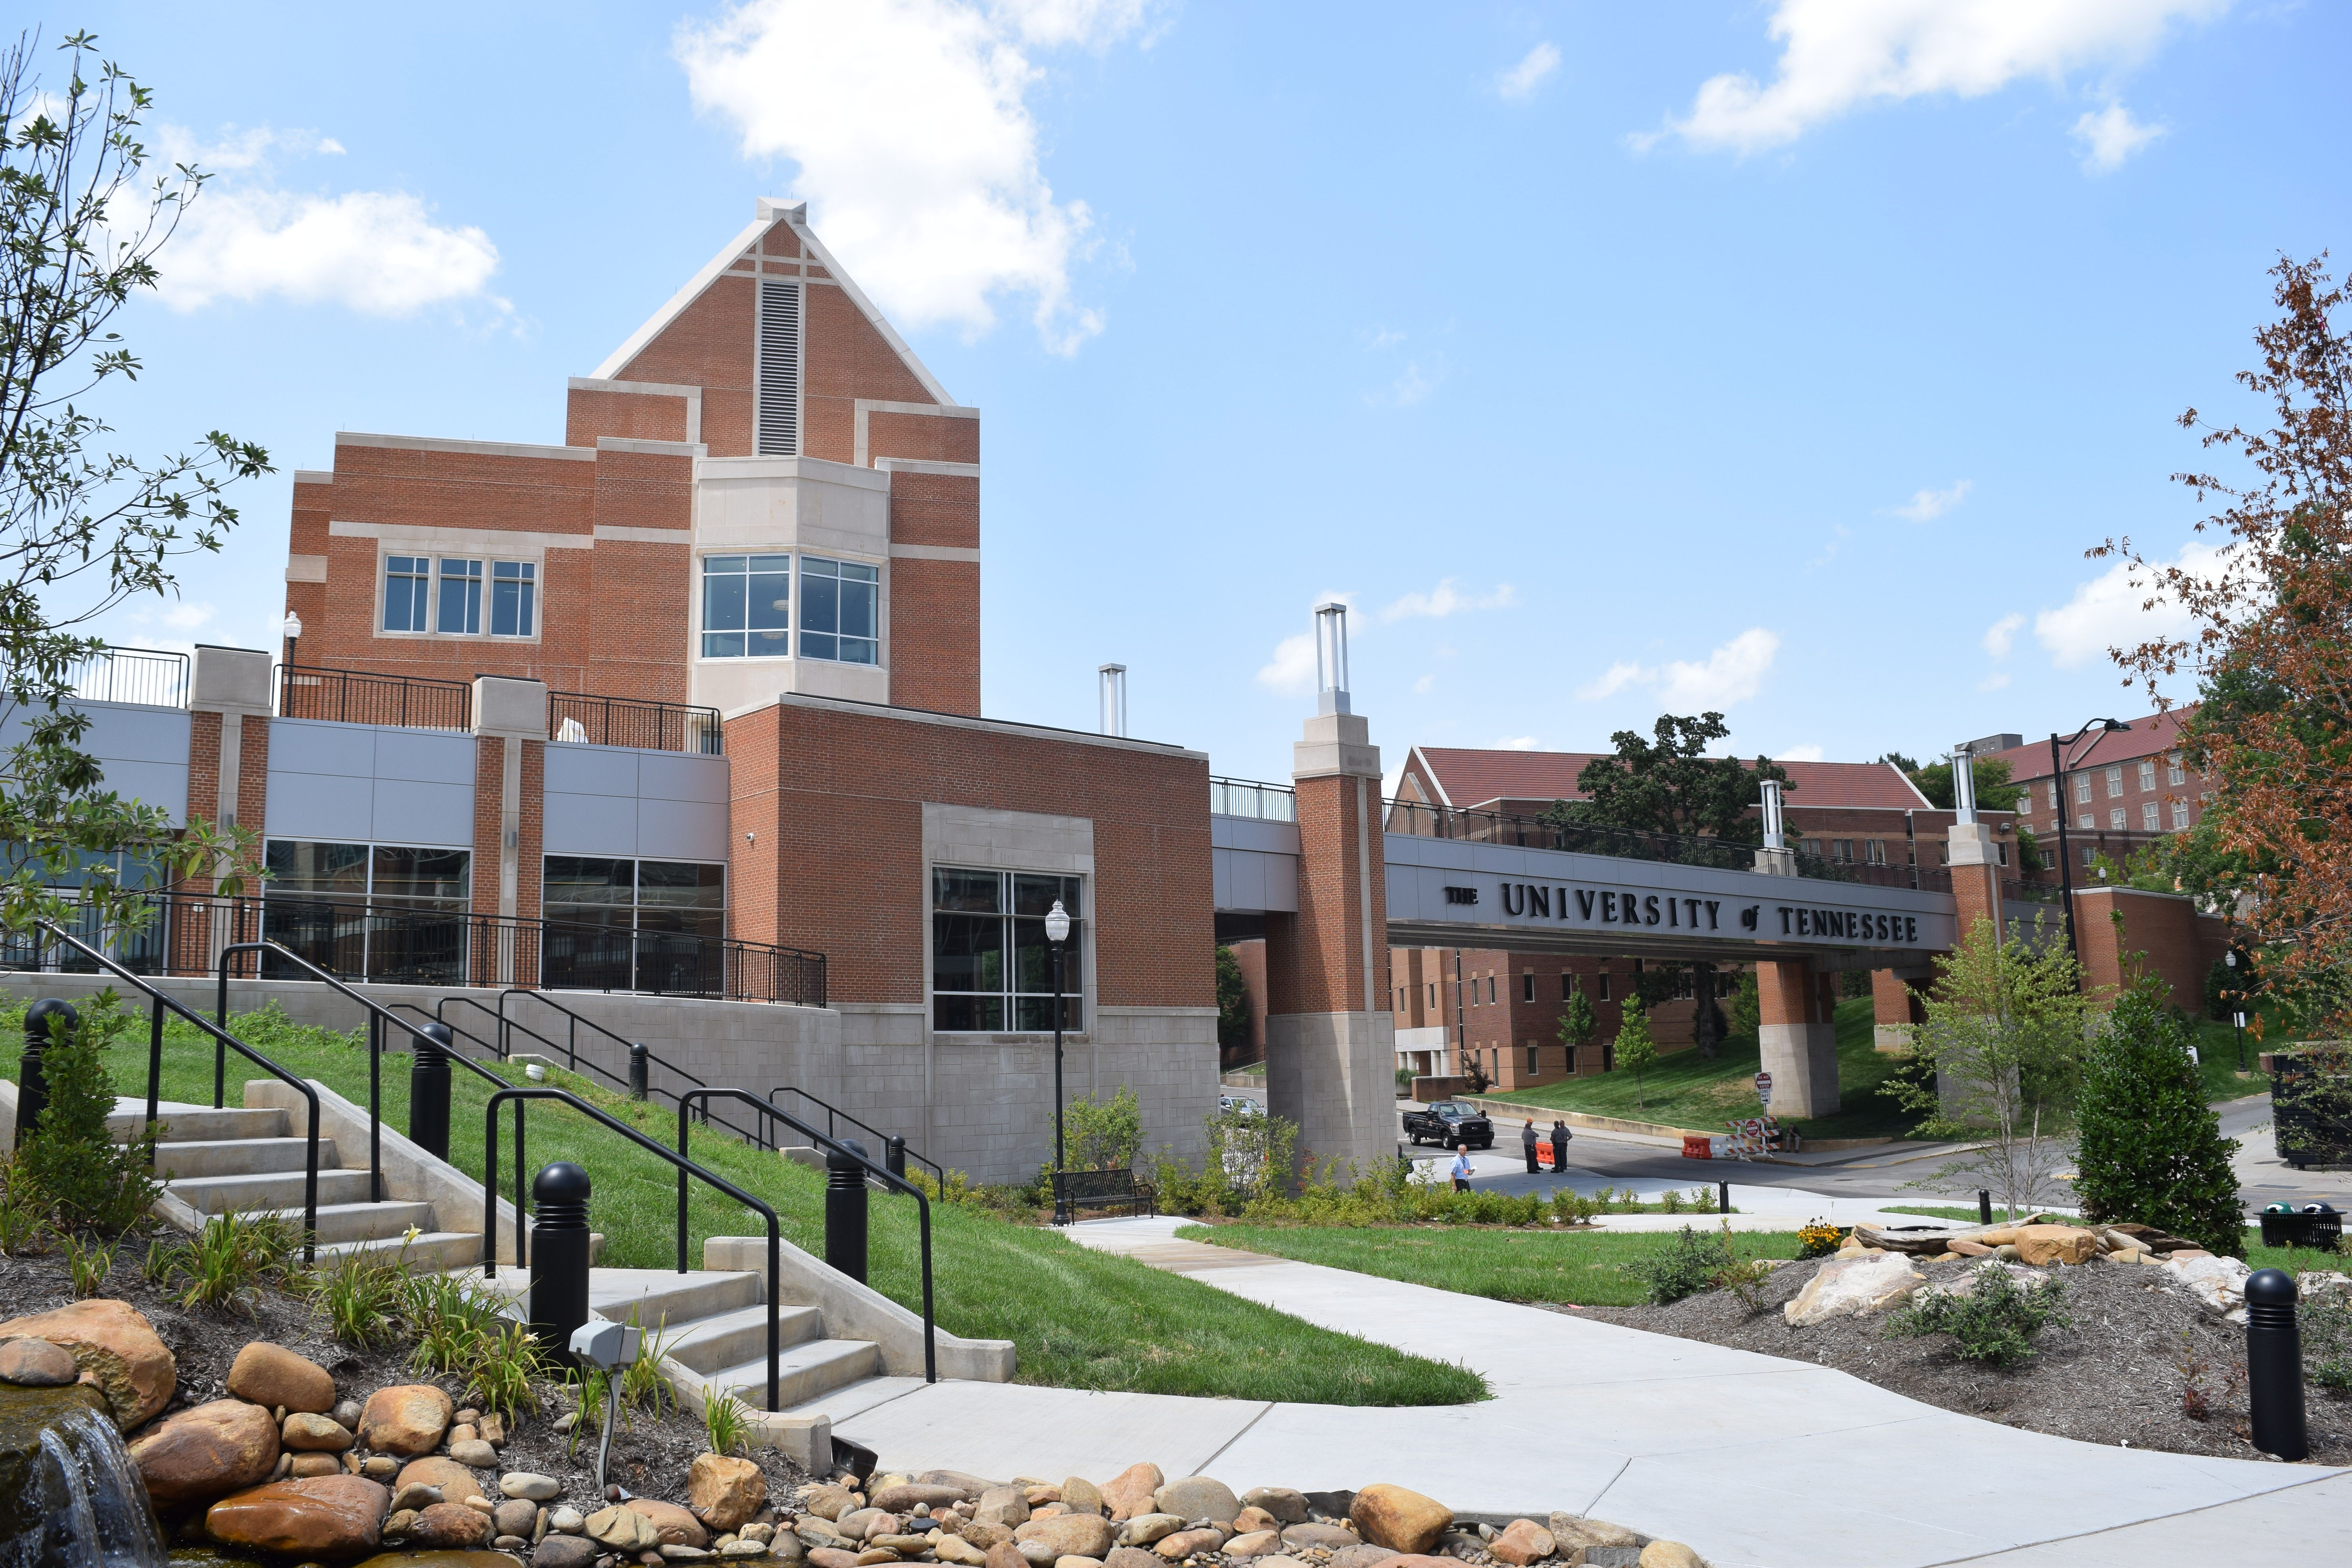 New Student Union At The University Of Tennessee Knoxville With